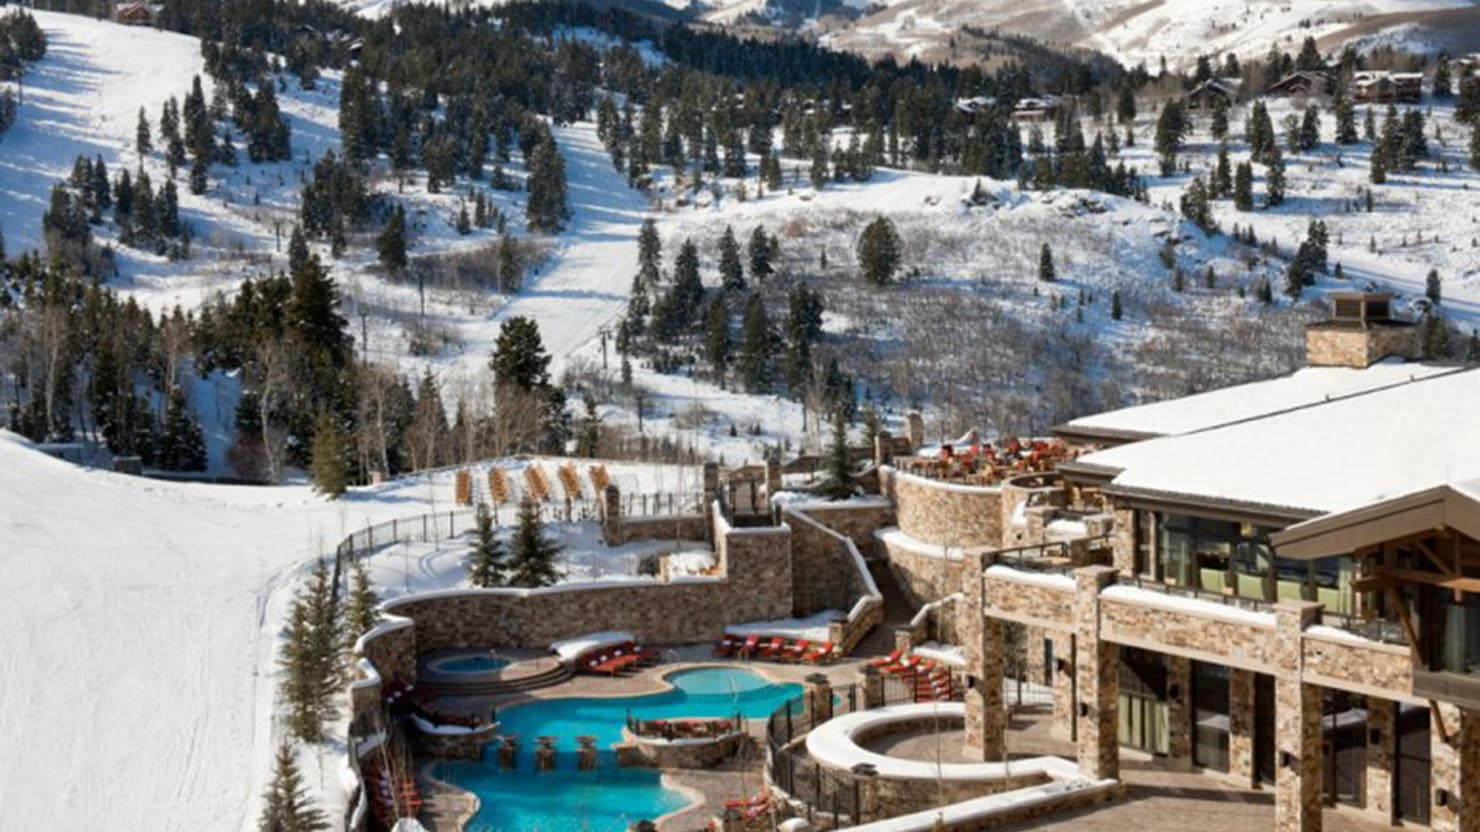 Hit the Slopes: The Best Ski Resorts and Hotels in the U.S. (Photos)